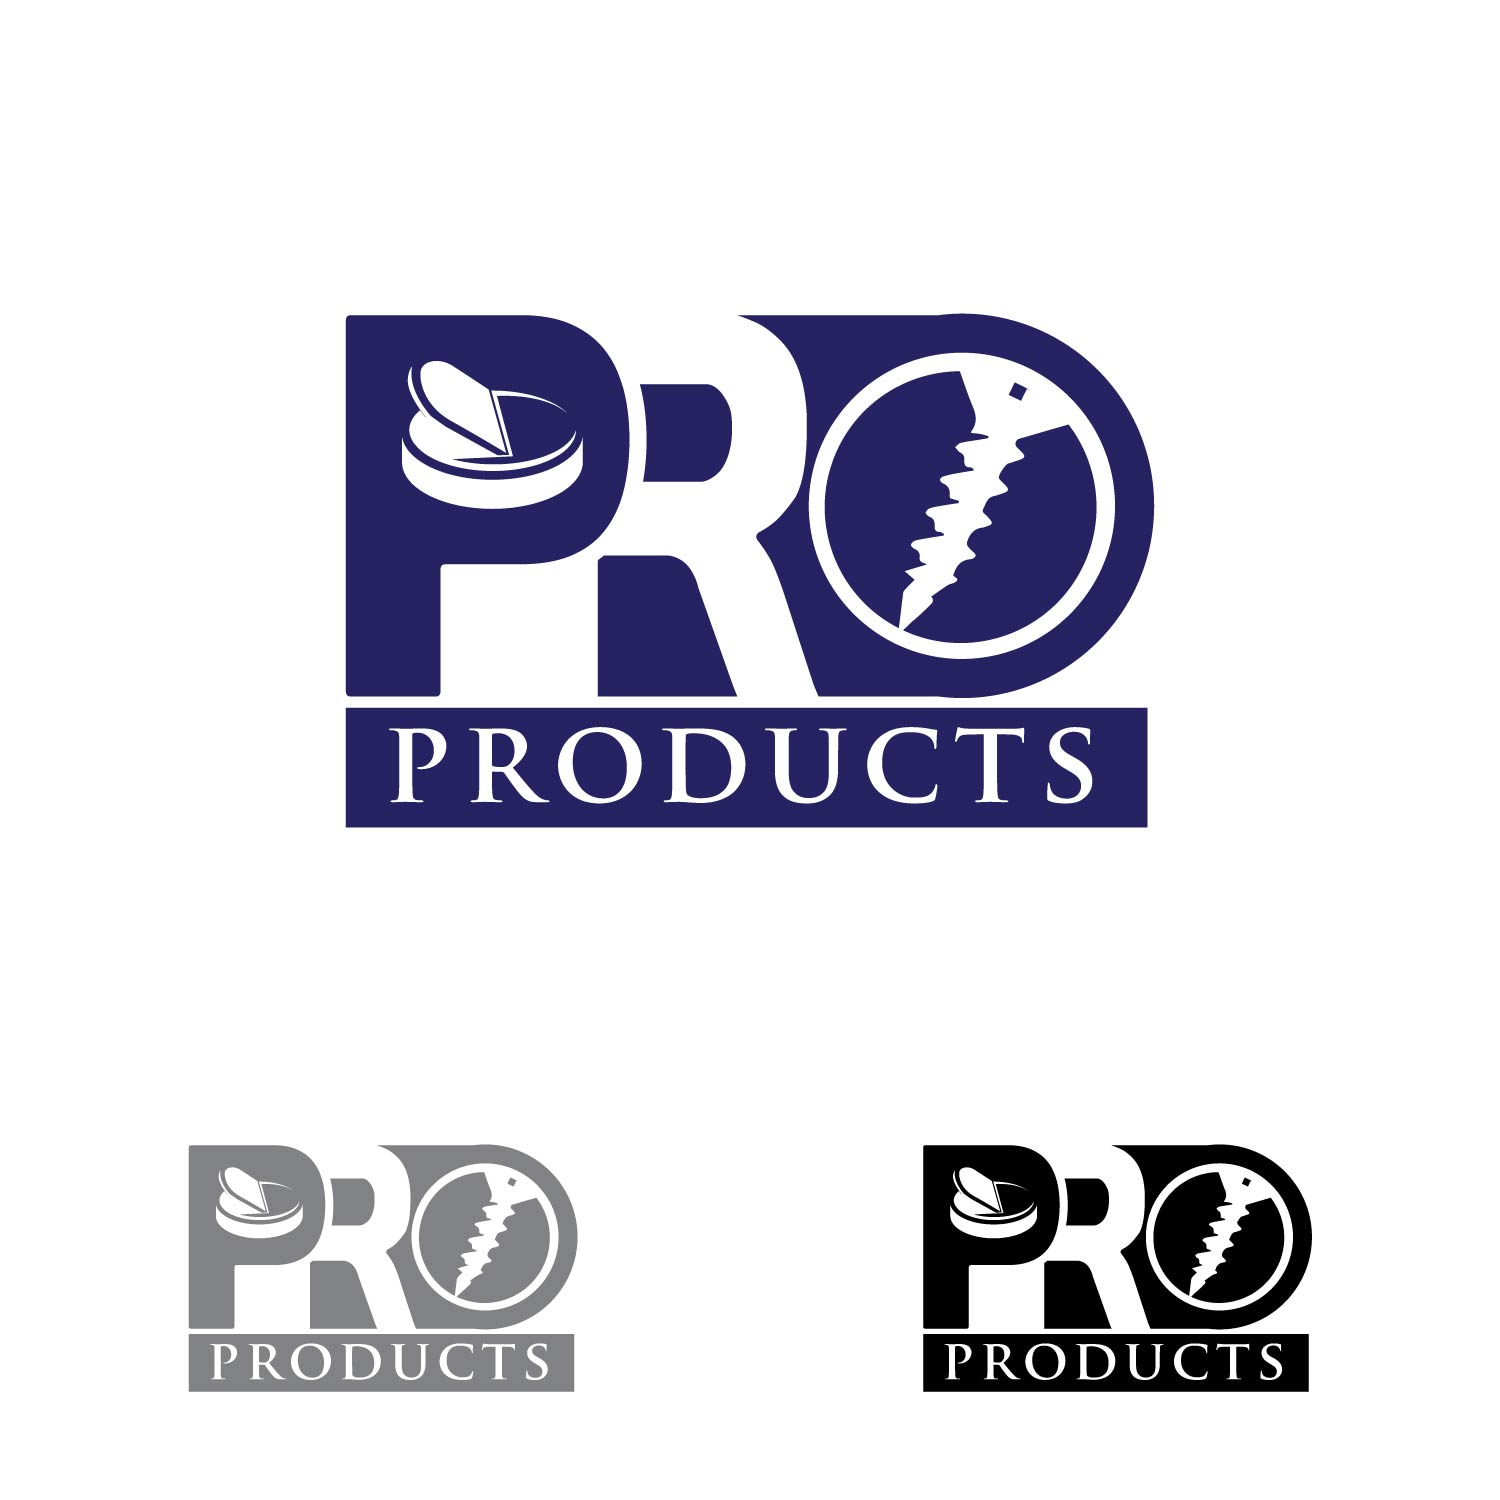 Logo Design by lagalag - Entry No. 22 in the Logo Design Contest Fun yet Professional Logo Design for ProProducts.